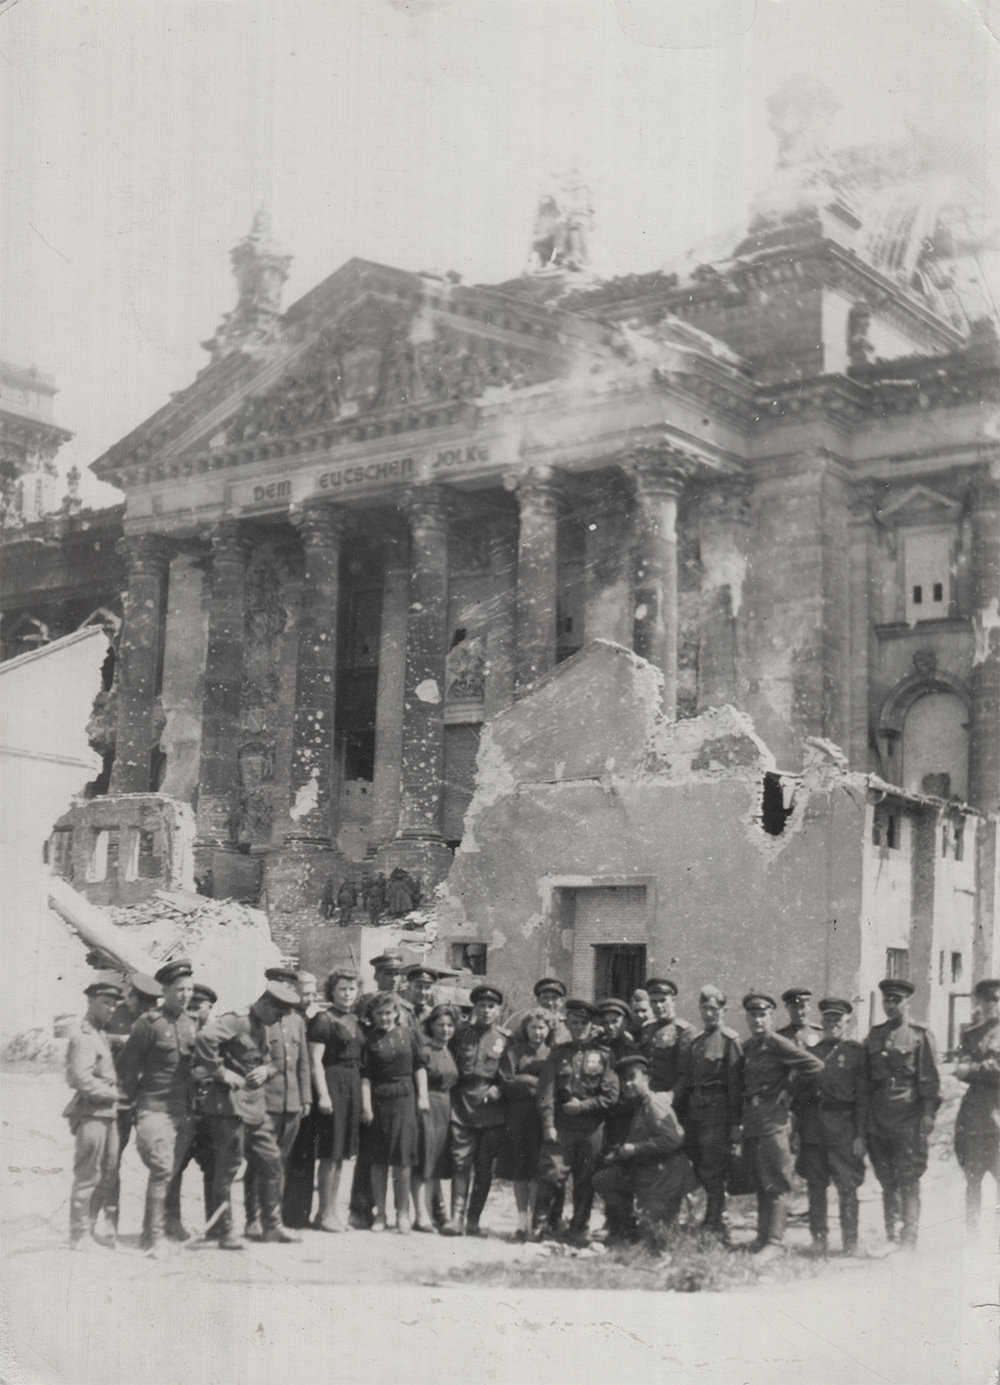 Photograph taken in celebration of Germany's capitulation. Kashper (left) with his military unit in front of the Reichstag. Berlin, May 1945